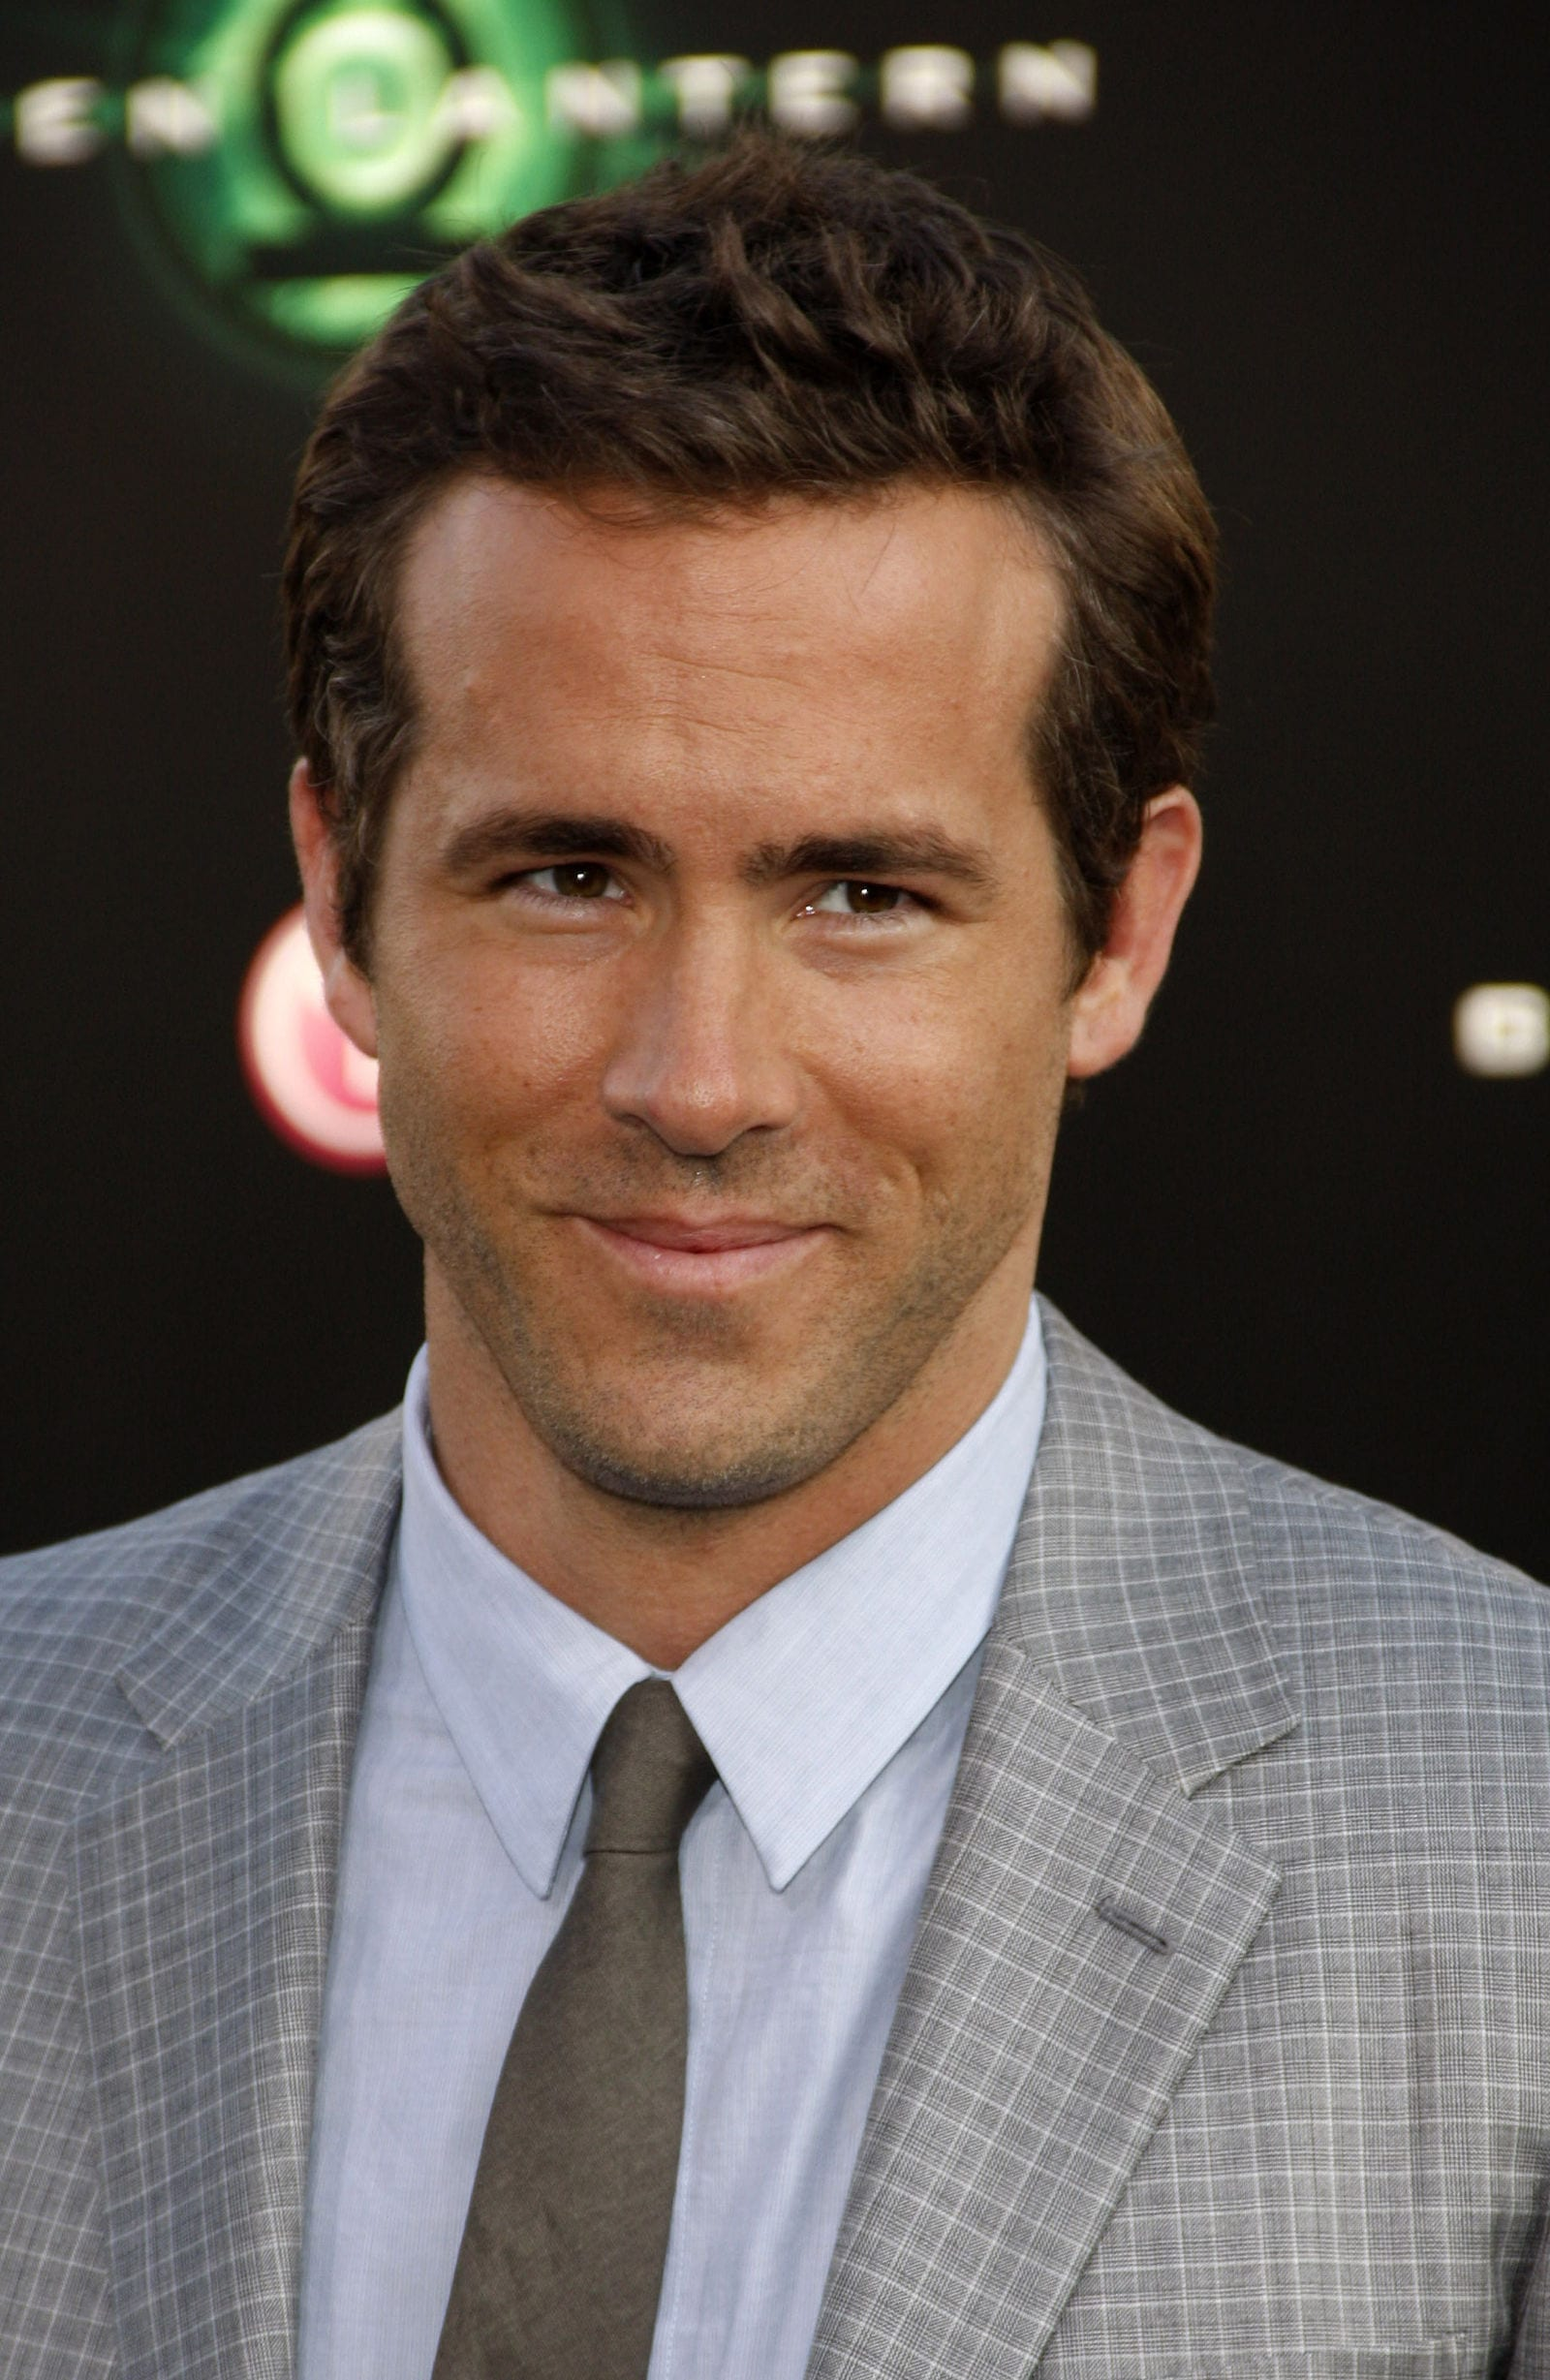 Ryan Reynolds classic regular taper without side part